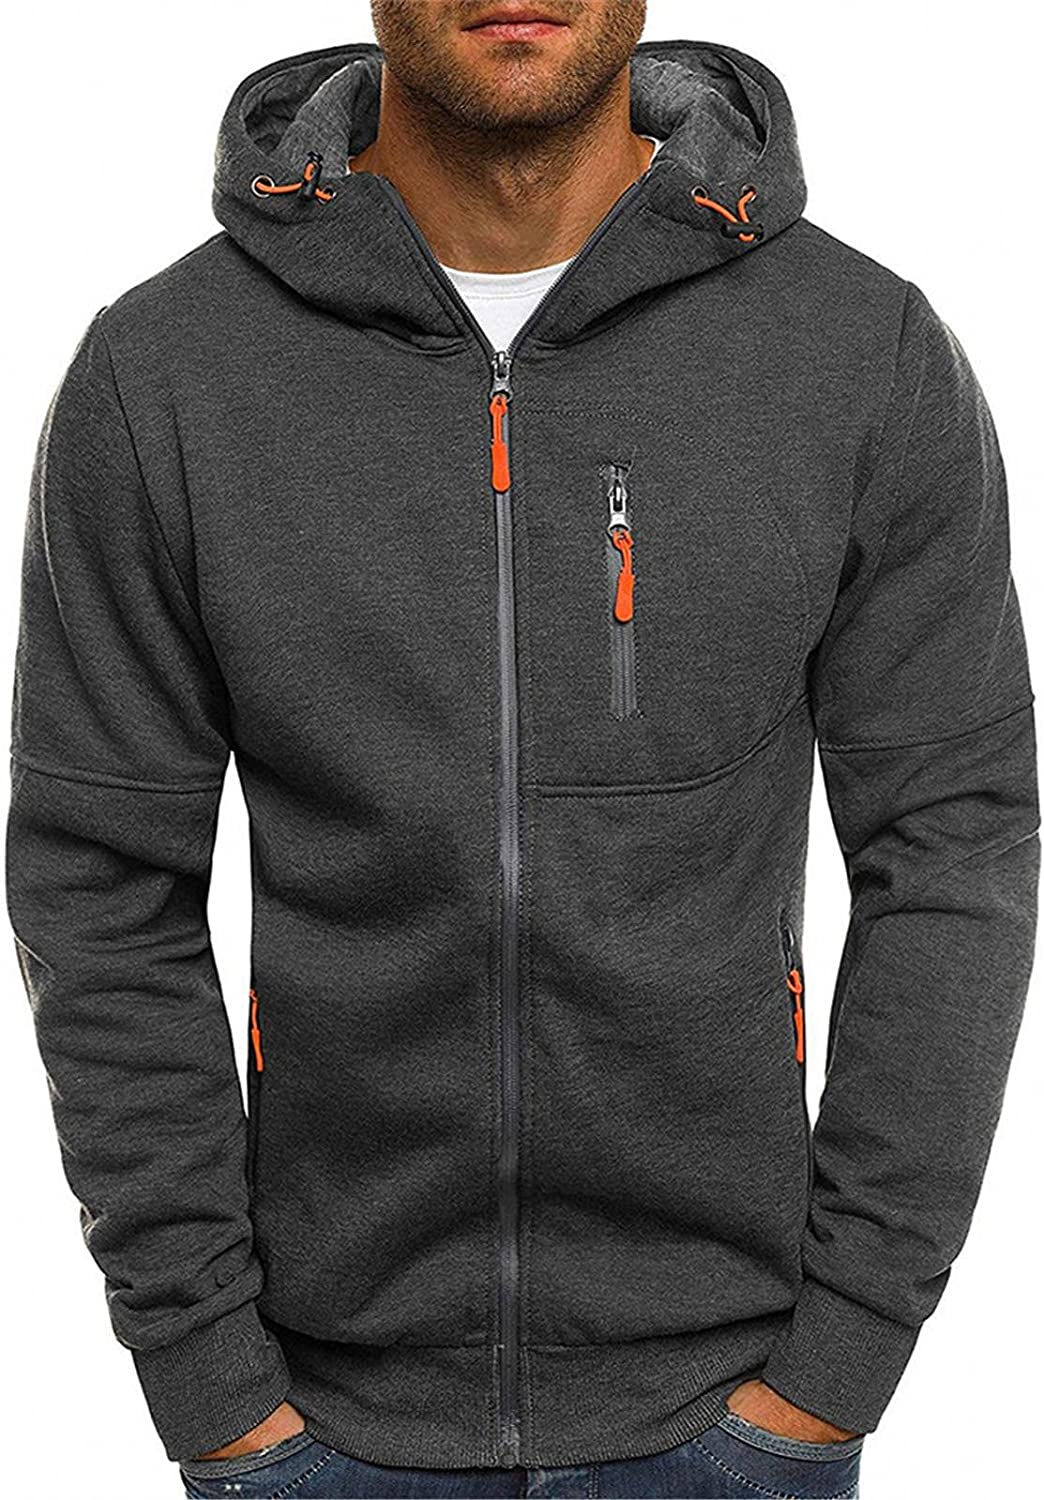 Aayomet Pullover Hoodies for Men Solid Zipper Long Sleeve Hooded Sweatshirts Casual Workout Sport Sweaters Blouses Tops